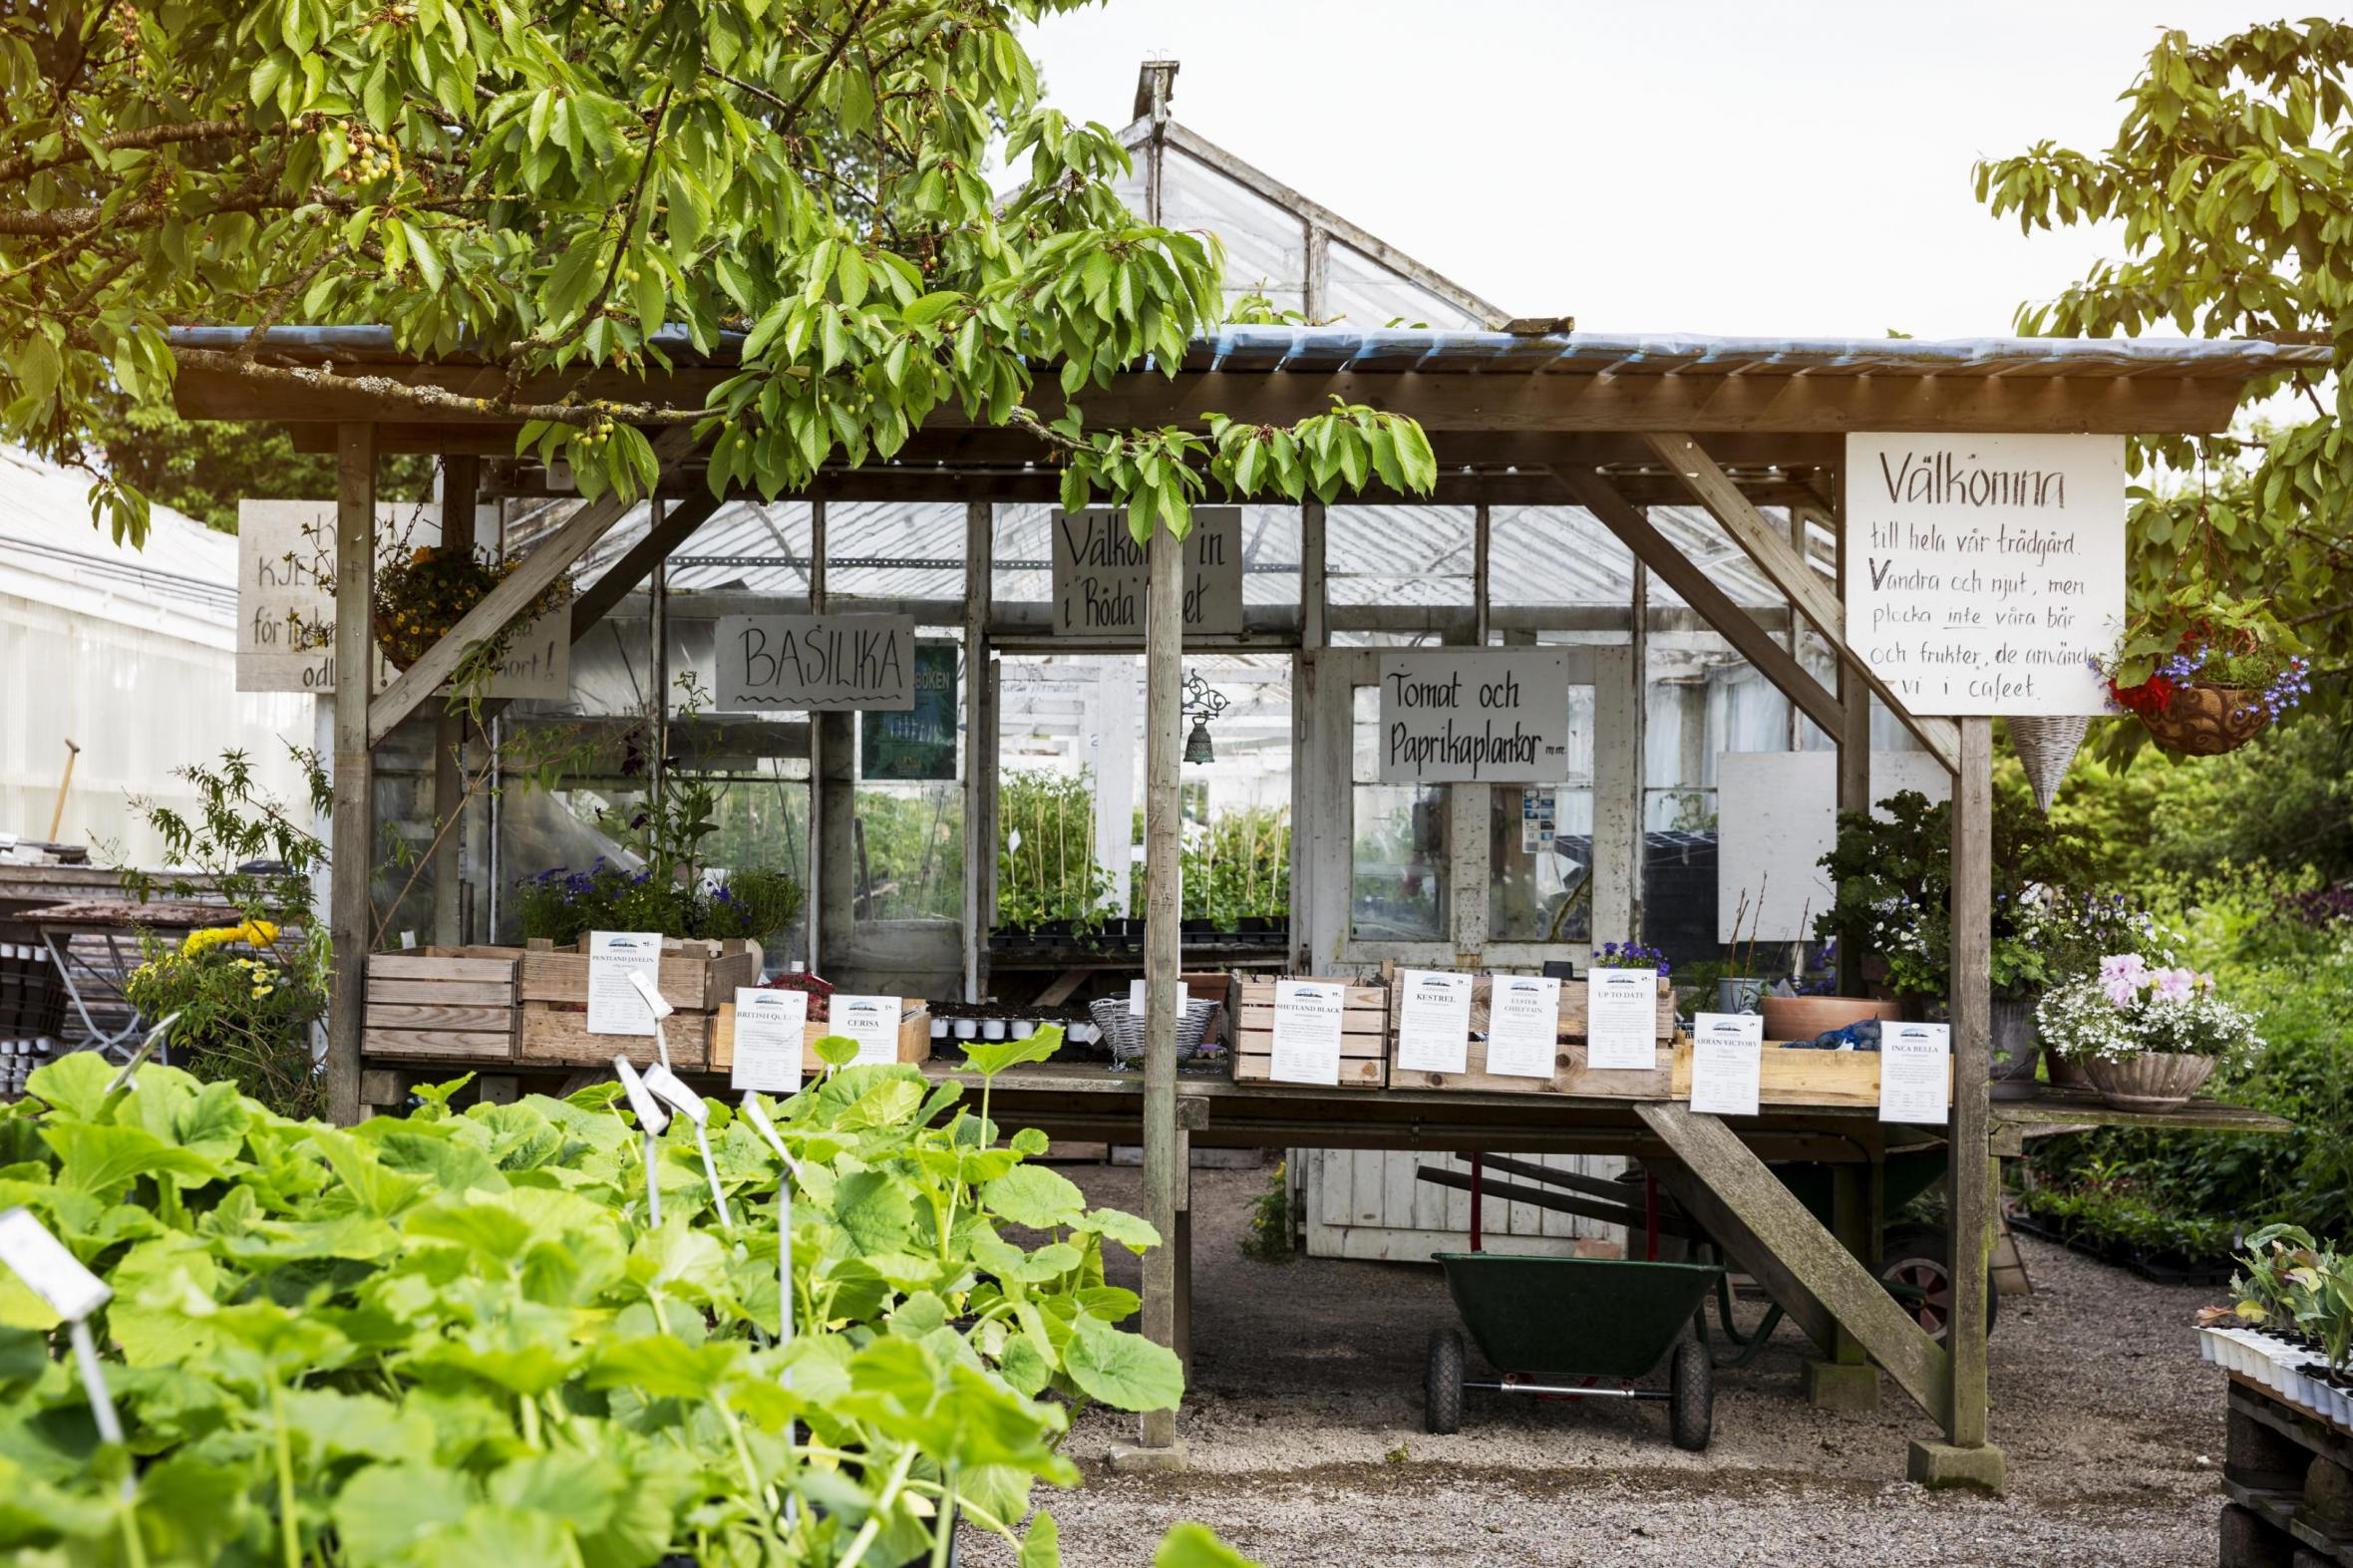 A garden with a greenhouse with vegetables and spices for sale